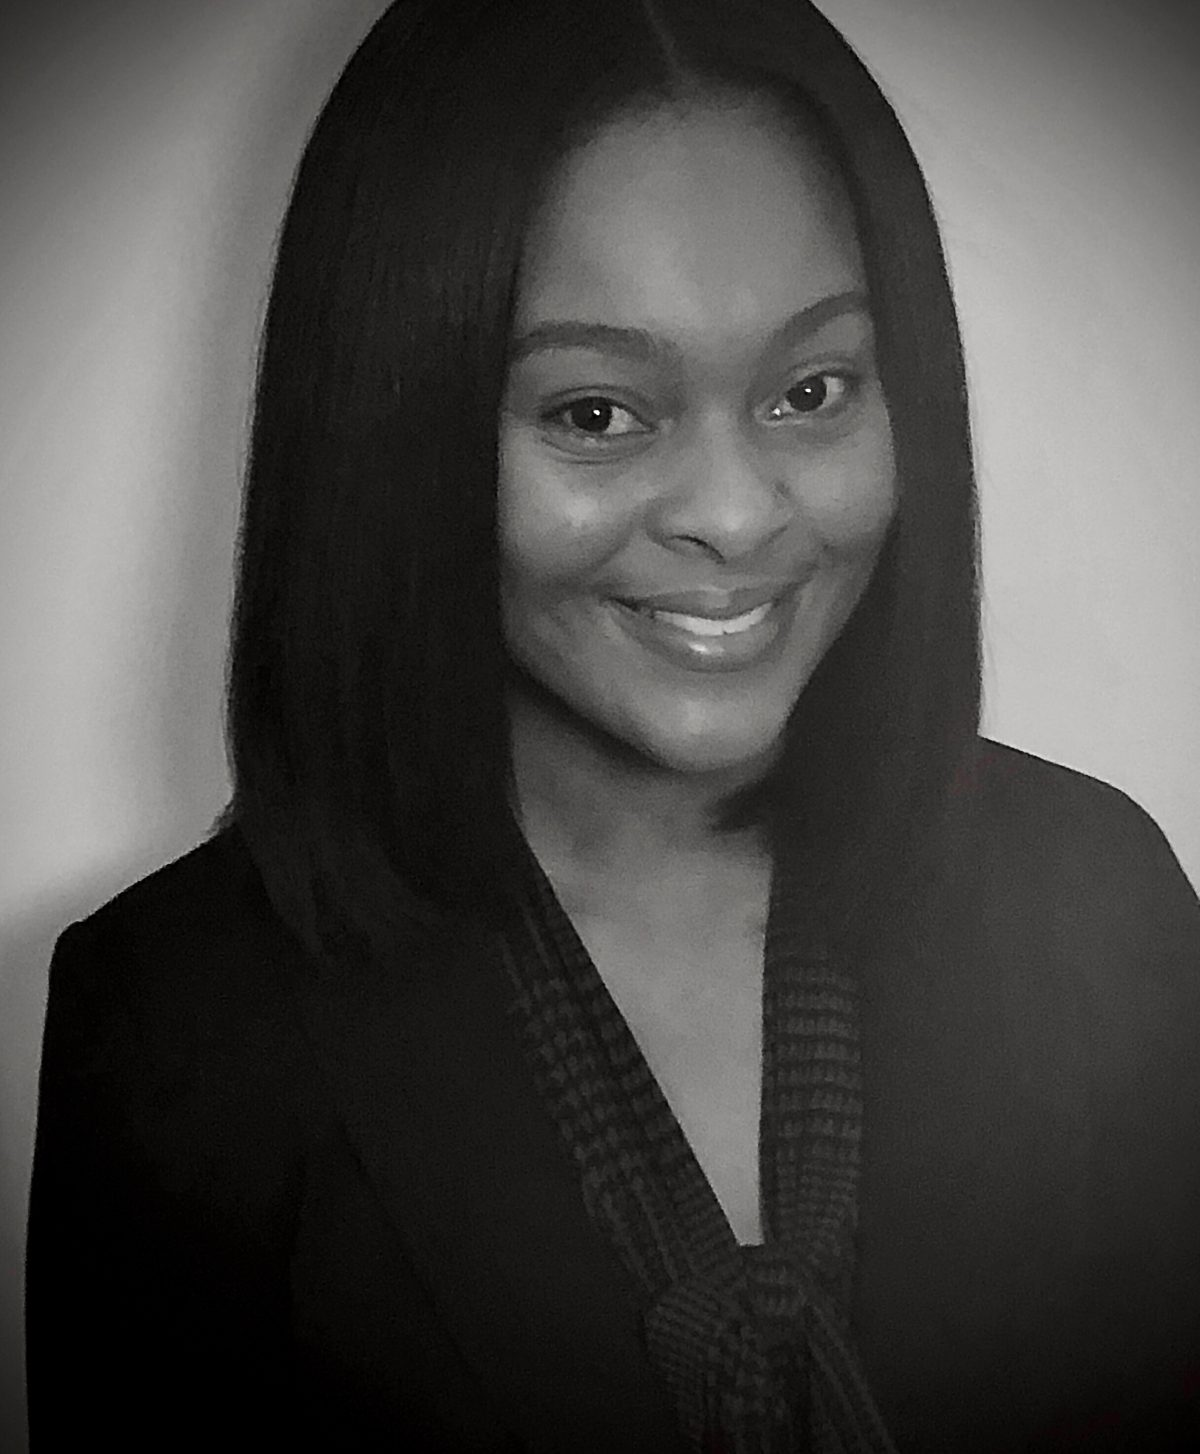 Shanelle Johnson - Senior Policy Counsel, Fines and Fees Justice Center